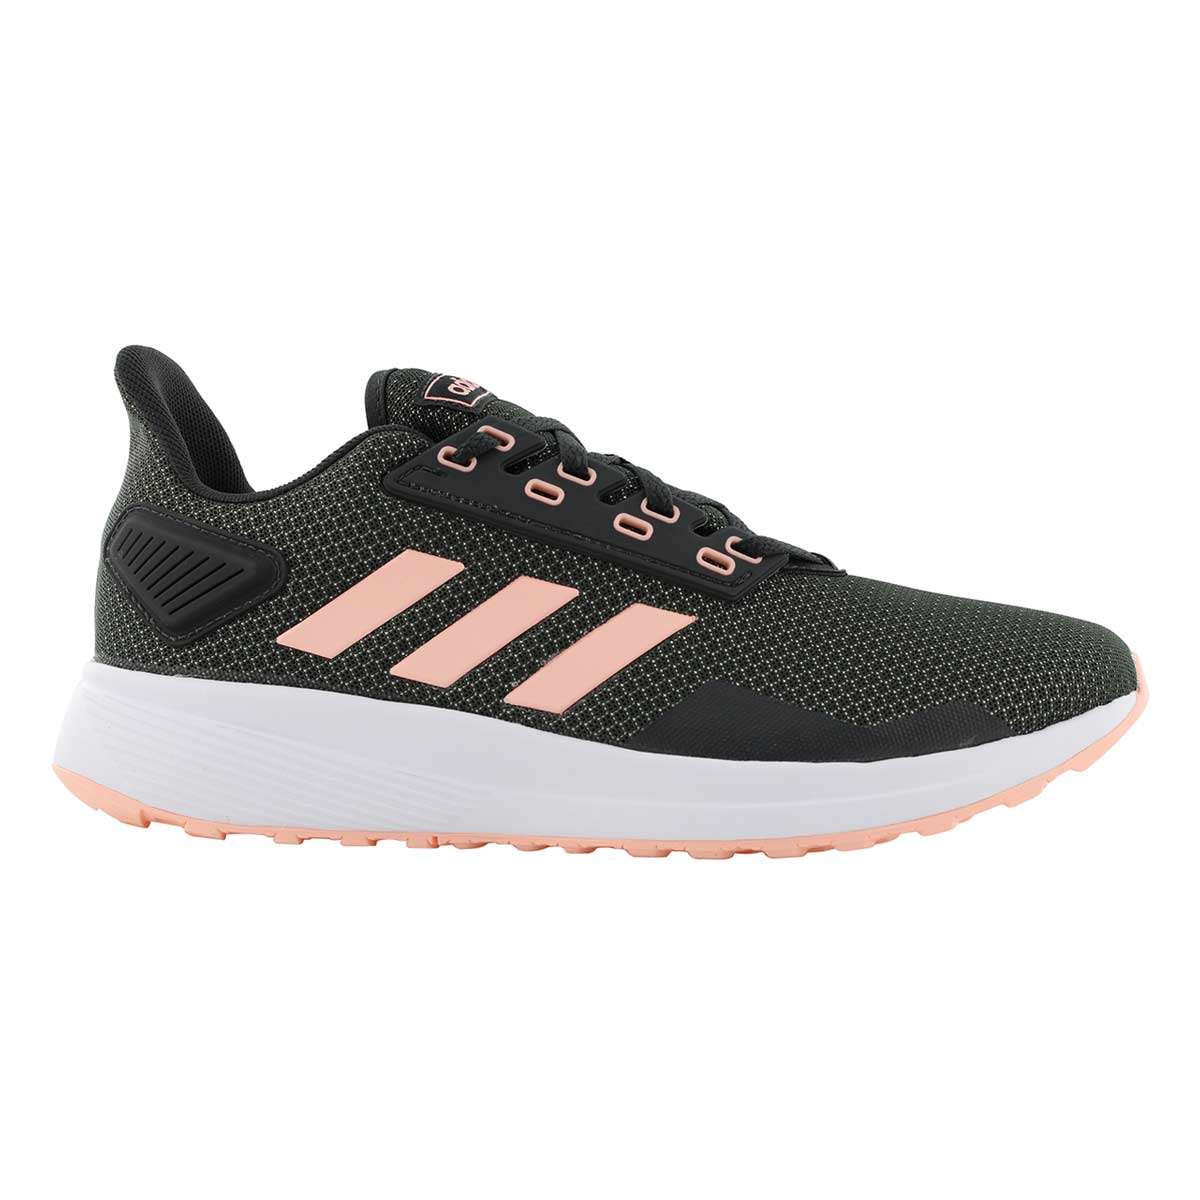 Lds Duramo 9 blk/peach running shoe